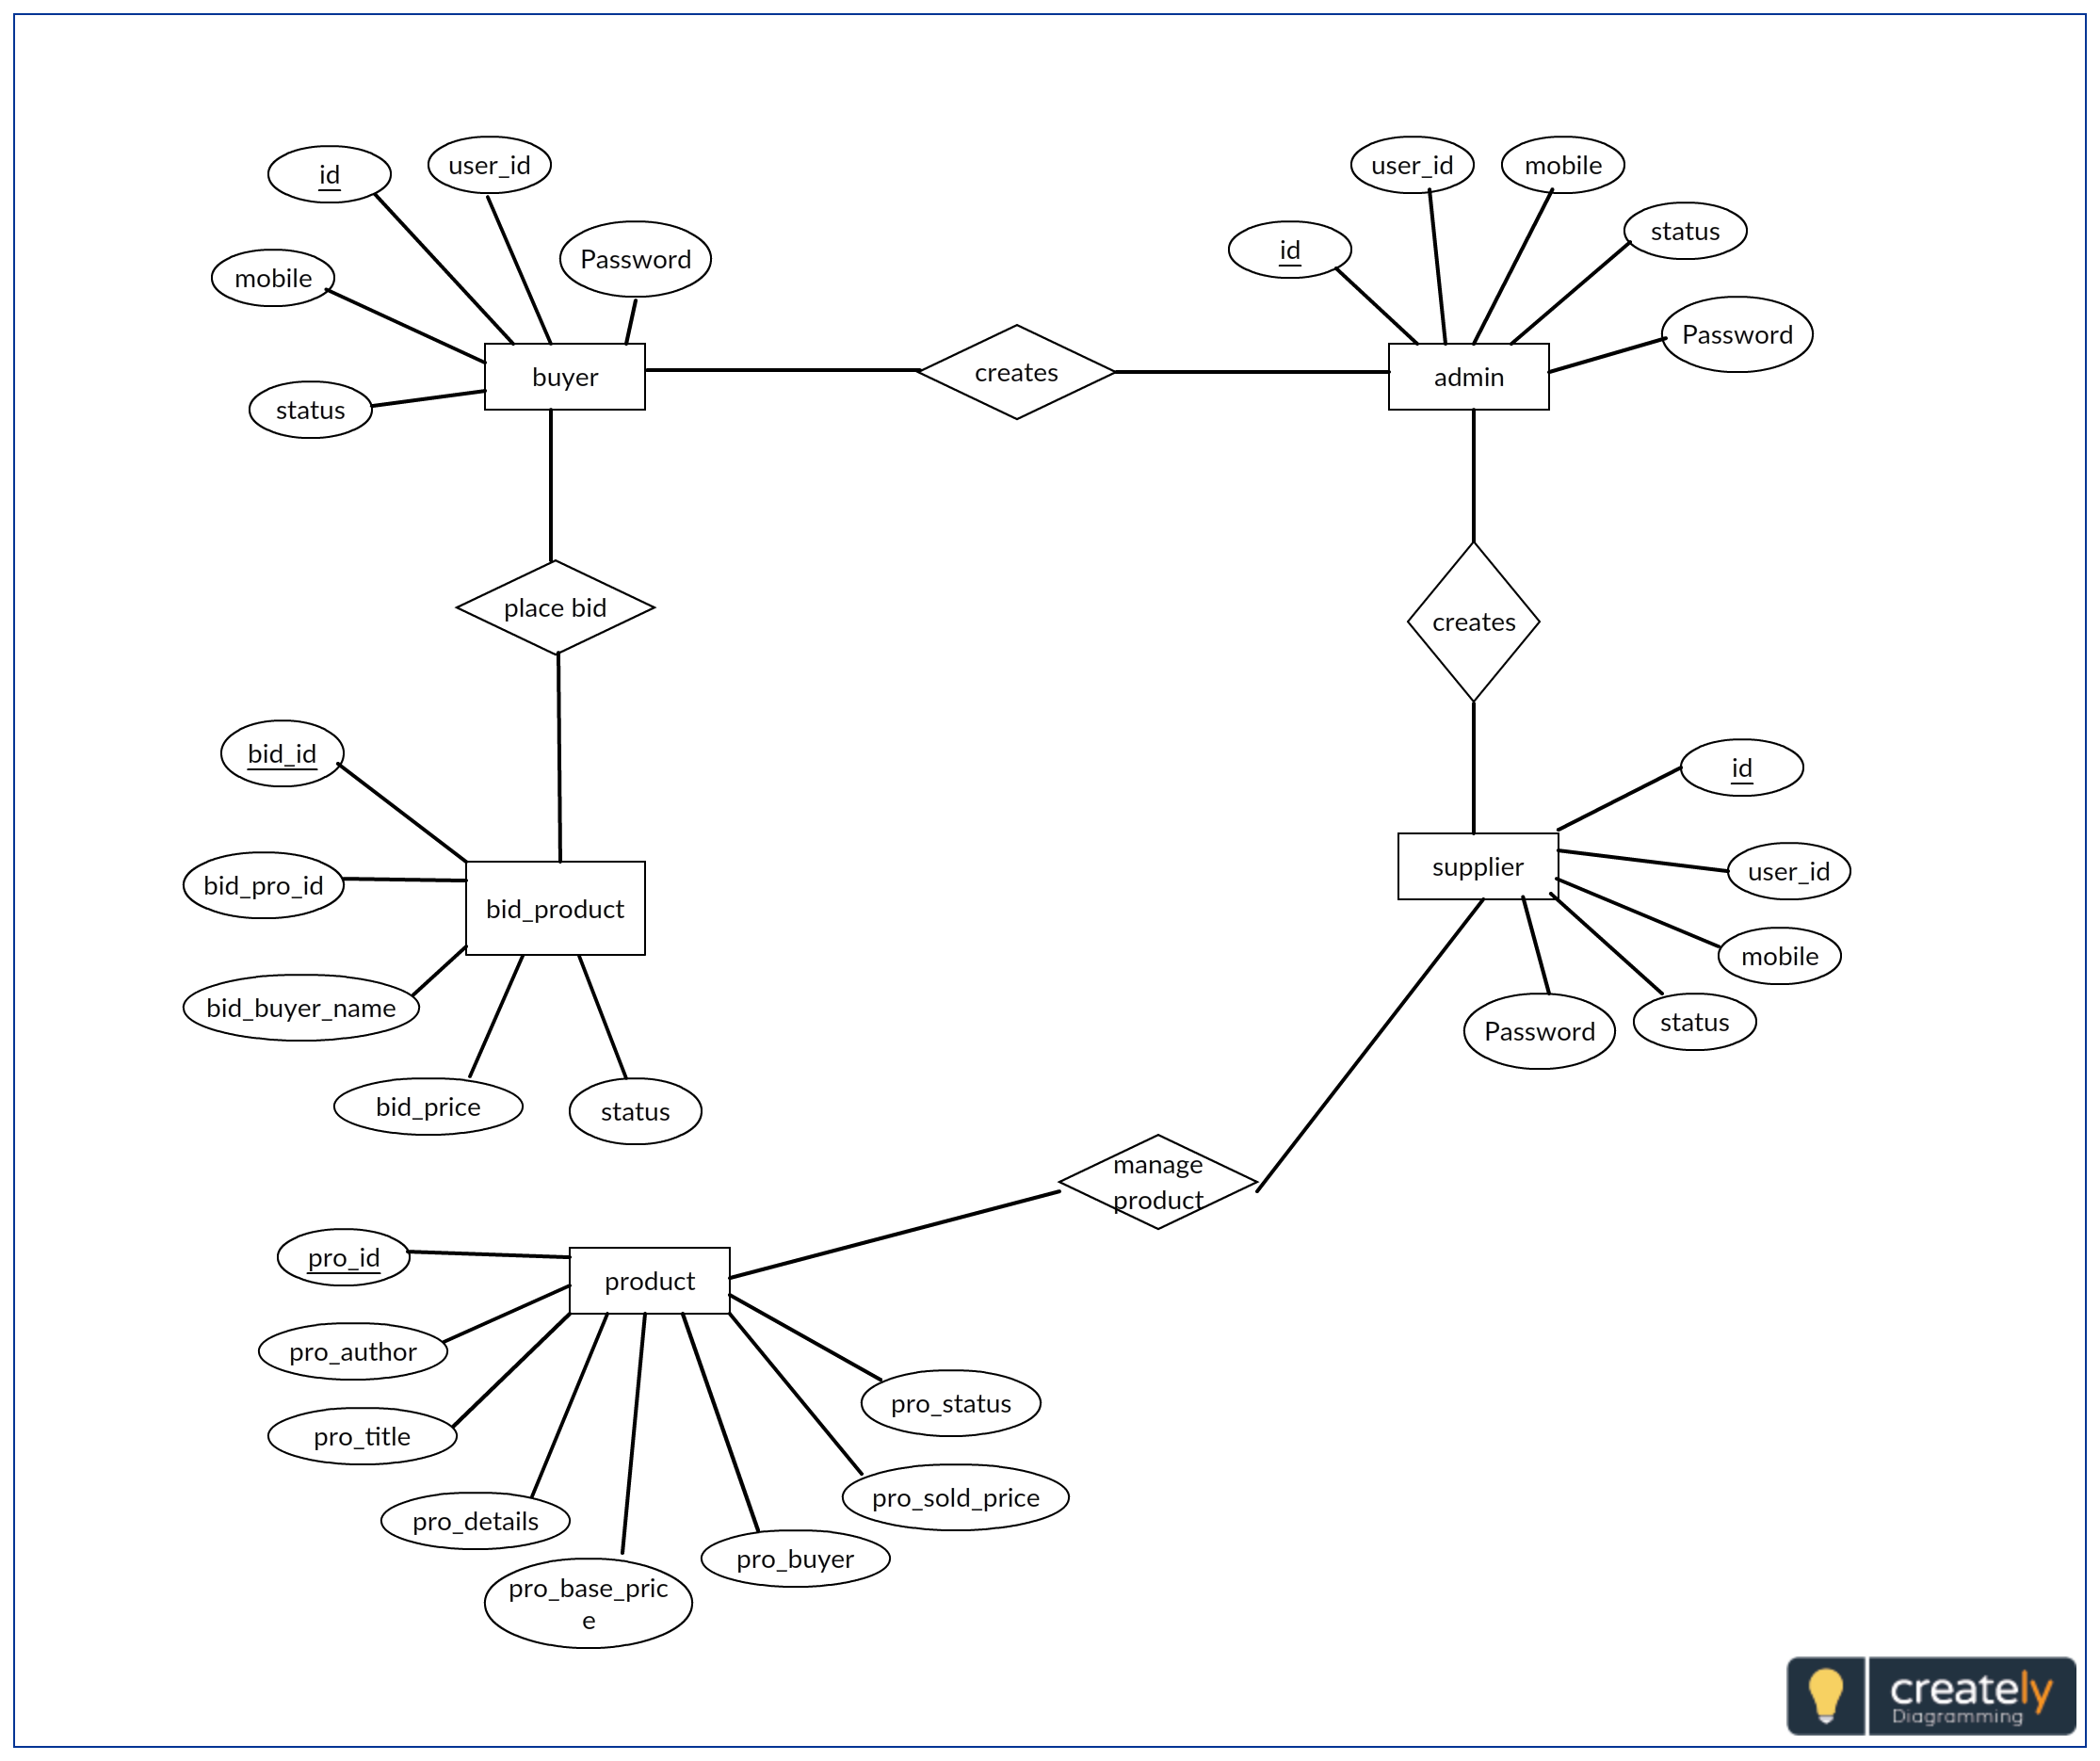 entity relationship diagram example for auctioning system click on the image to edit online and [ 2230 x 1870 Pixel ]